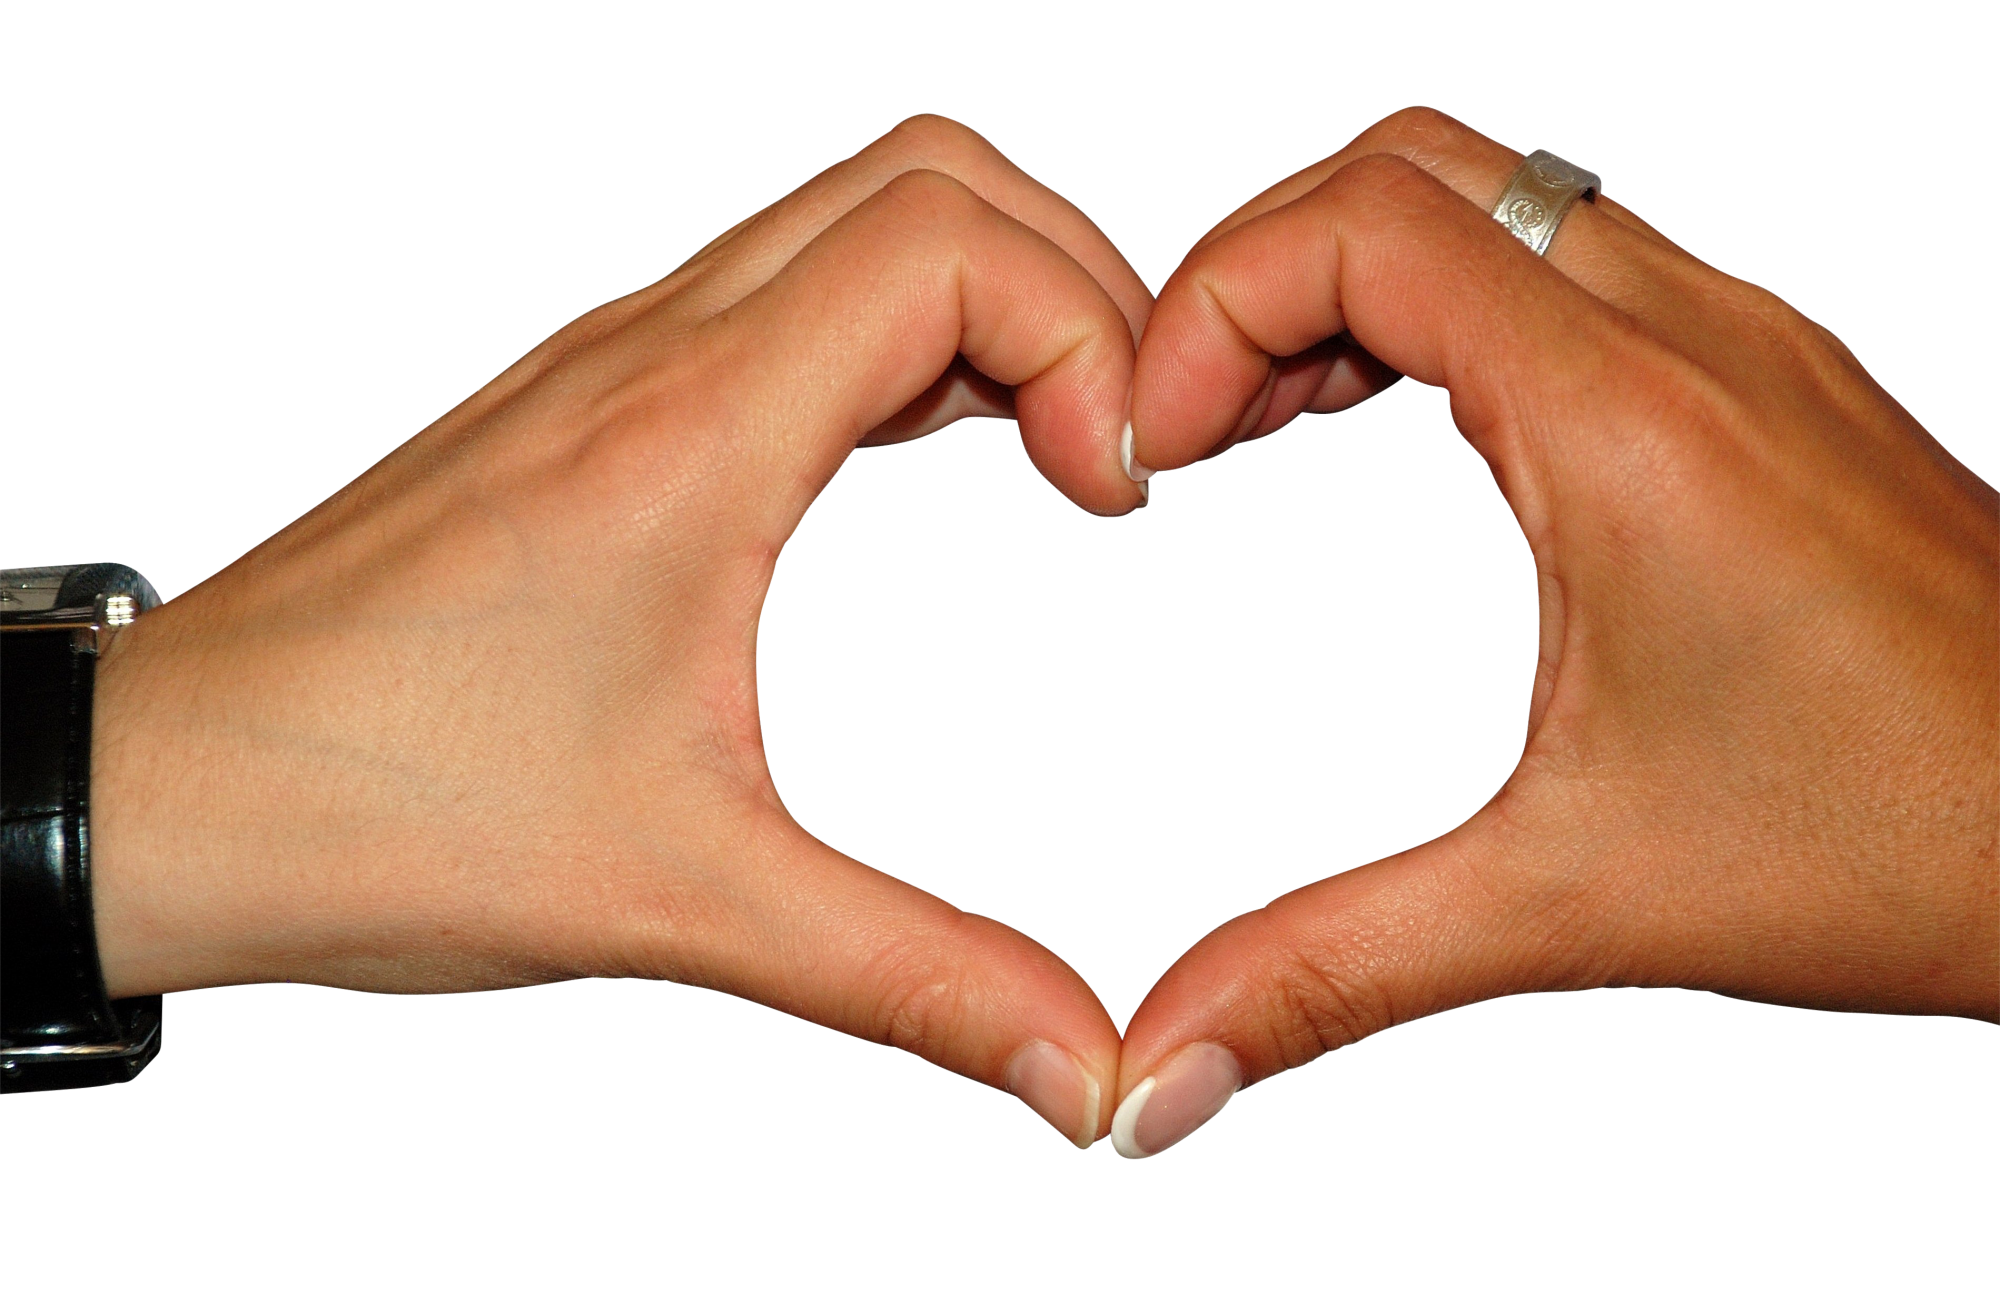 Download Hart Made By Two Hands Png Image For Free Png Images Hand Reference Heart Drawing